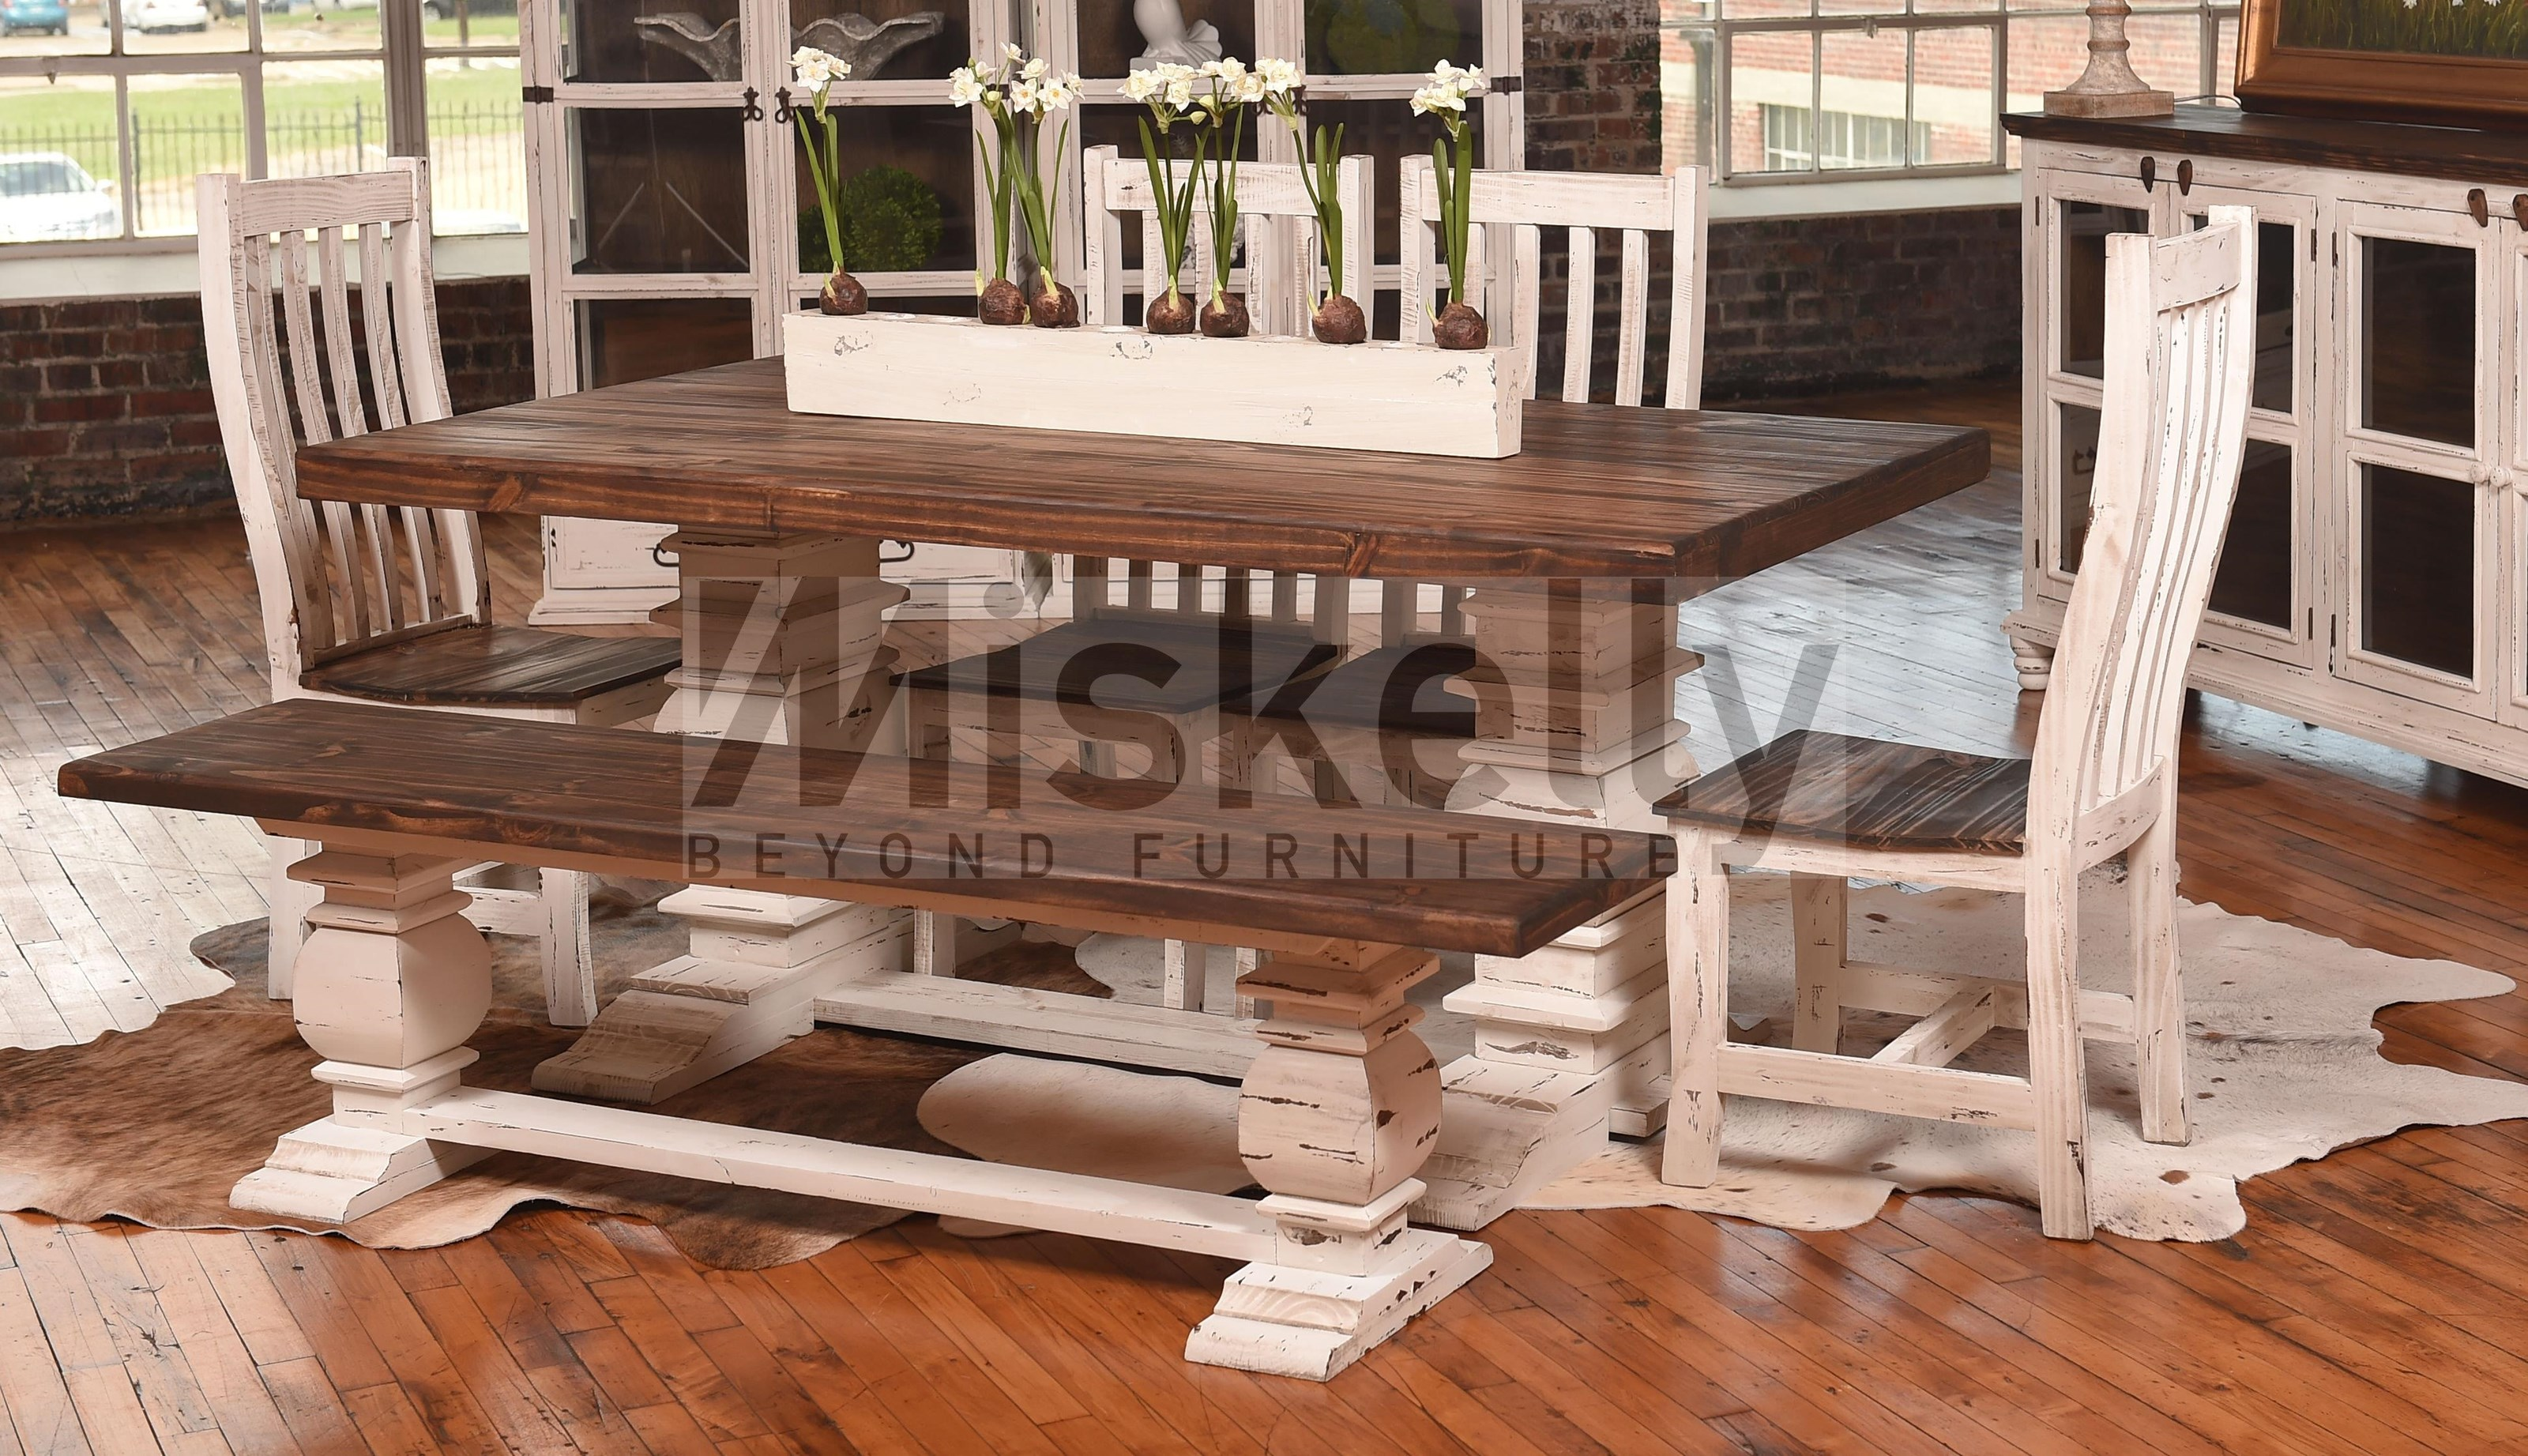 Solid Wood Table with 4 Chairs and Bench